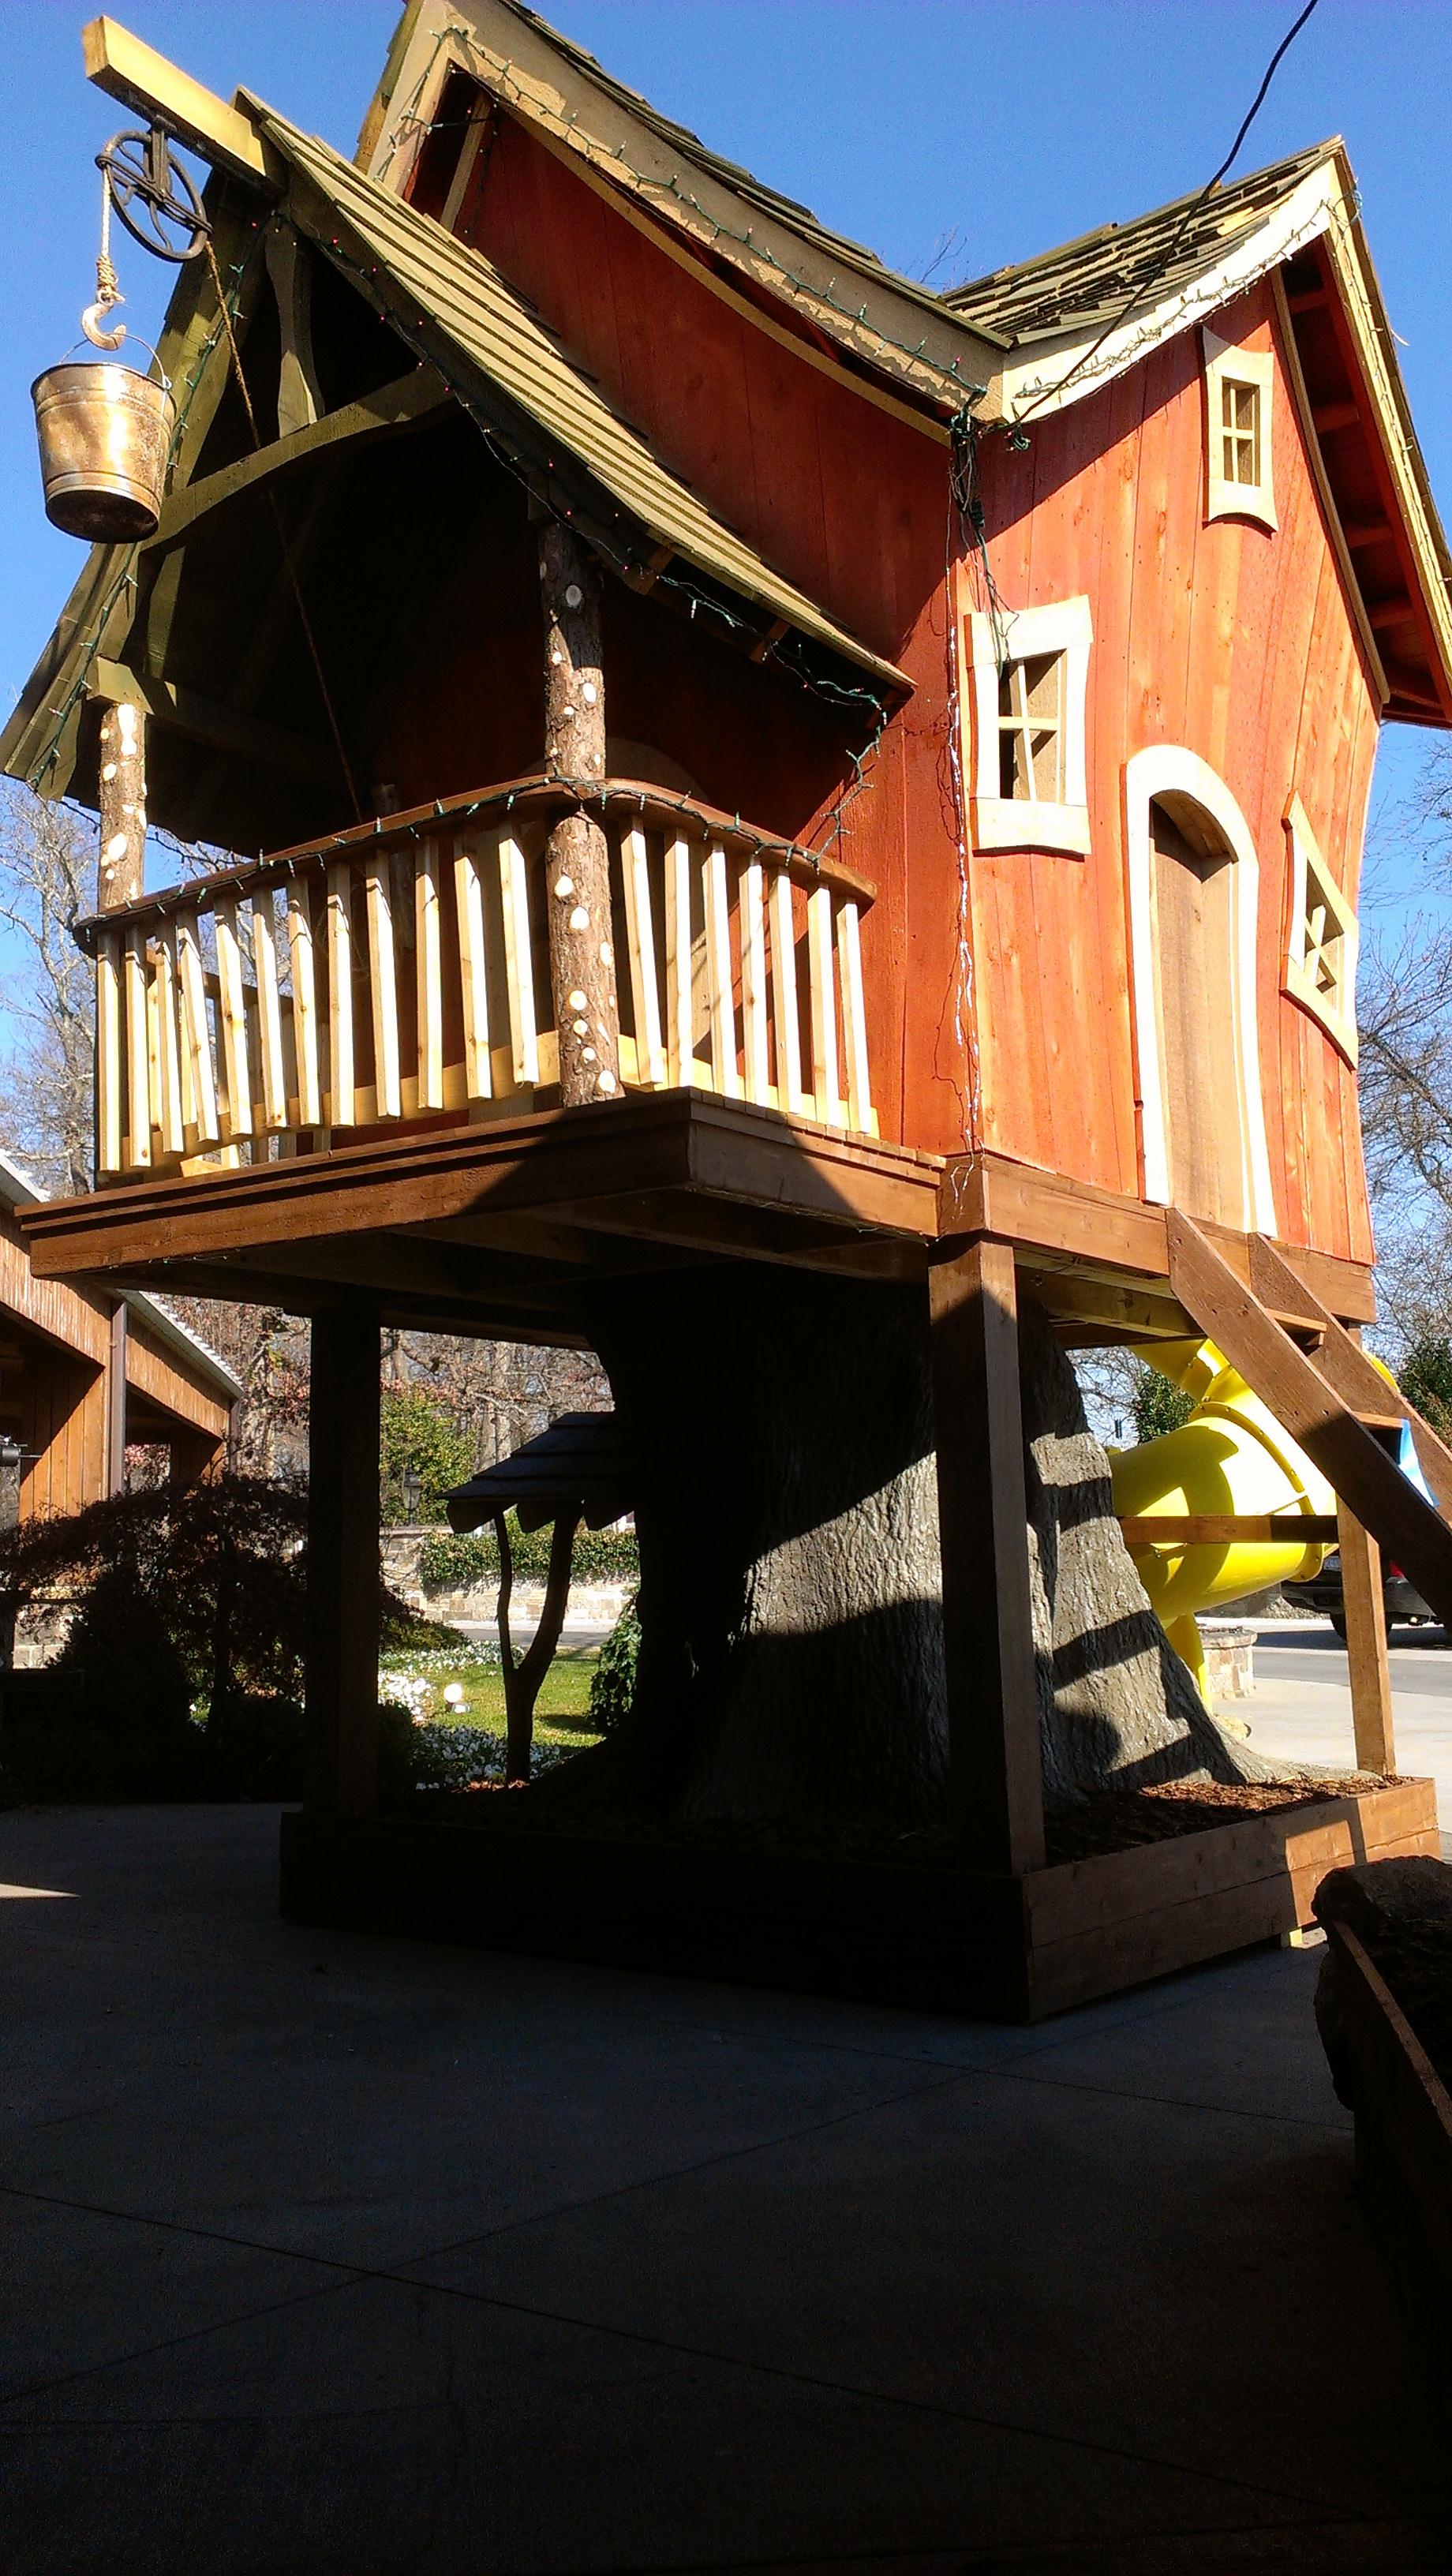 Creative Garden Spaces Inc, custom tree house construction